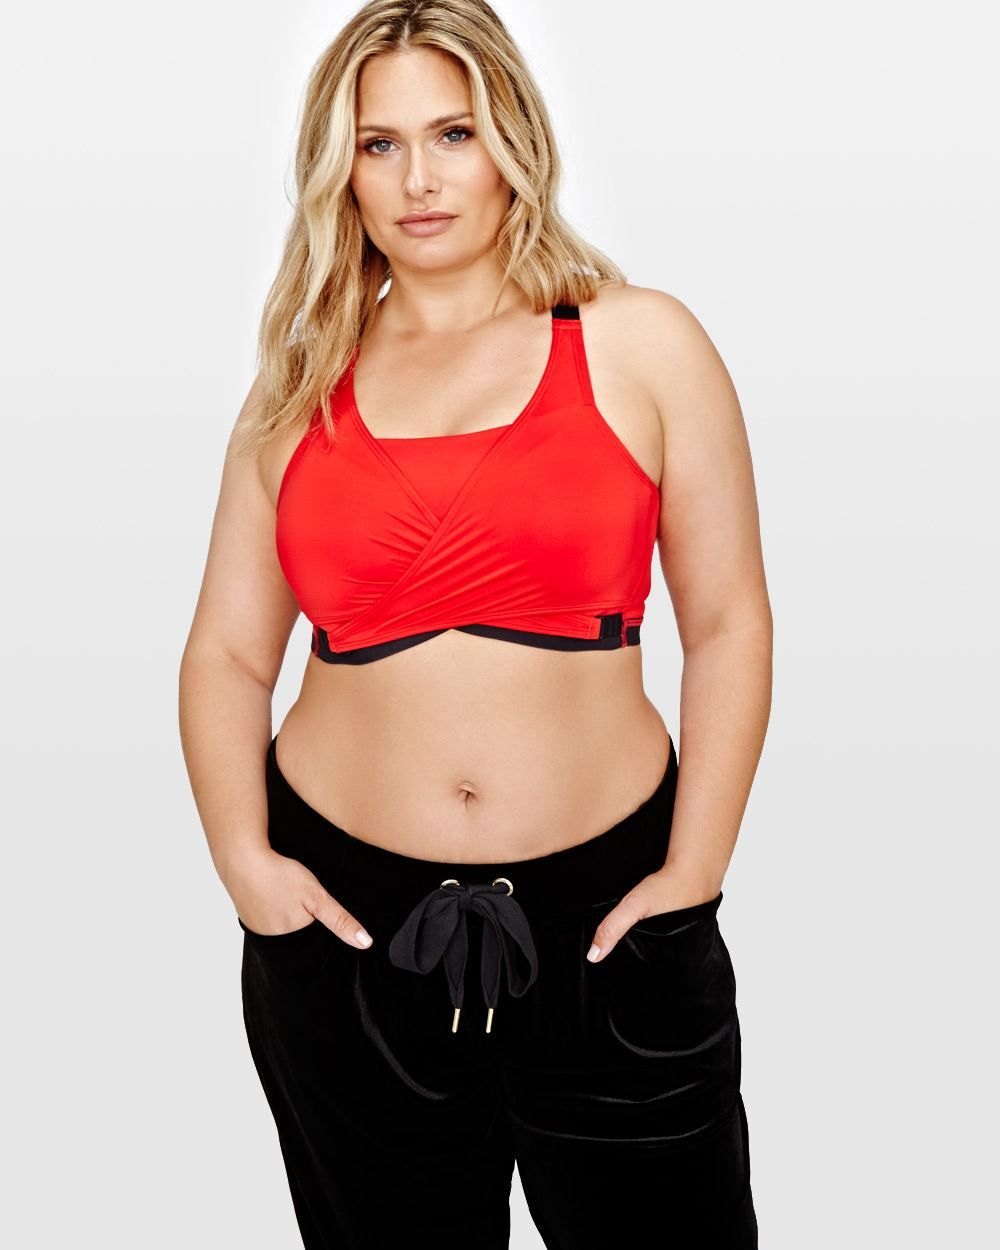 bb78ce2d0 You ll be the envy of your Zumba class with this two-layer plus size sports  bra by Nola! Featuring high front coverage for full support and for reduced  ...